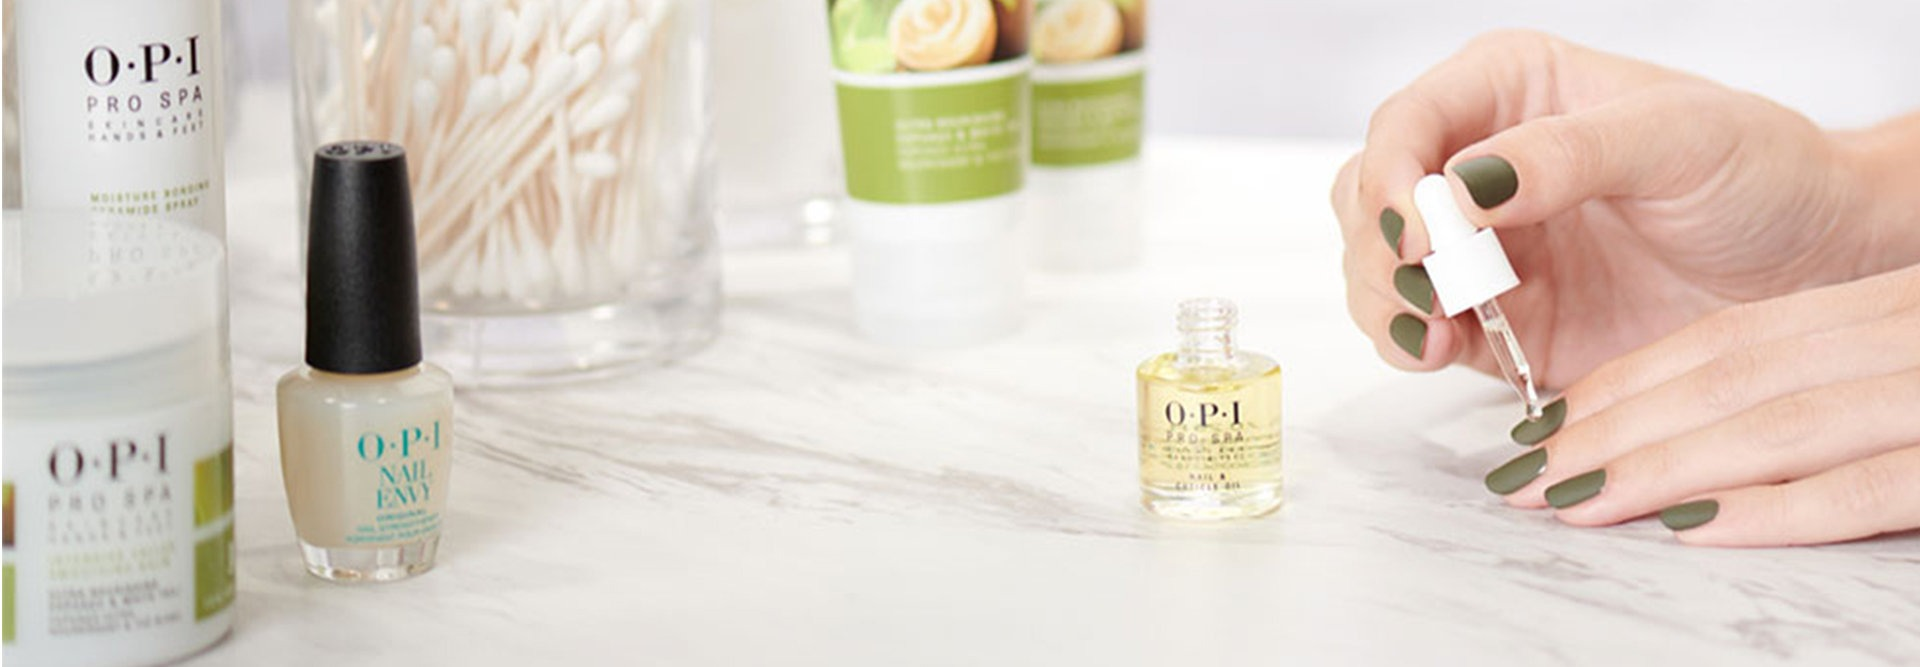 OPI ProSpa Skincare for Hands & Feet